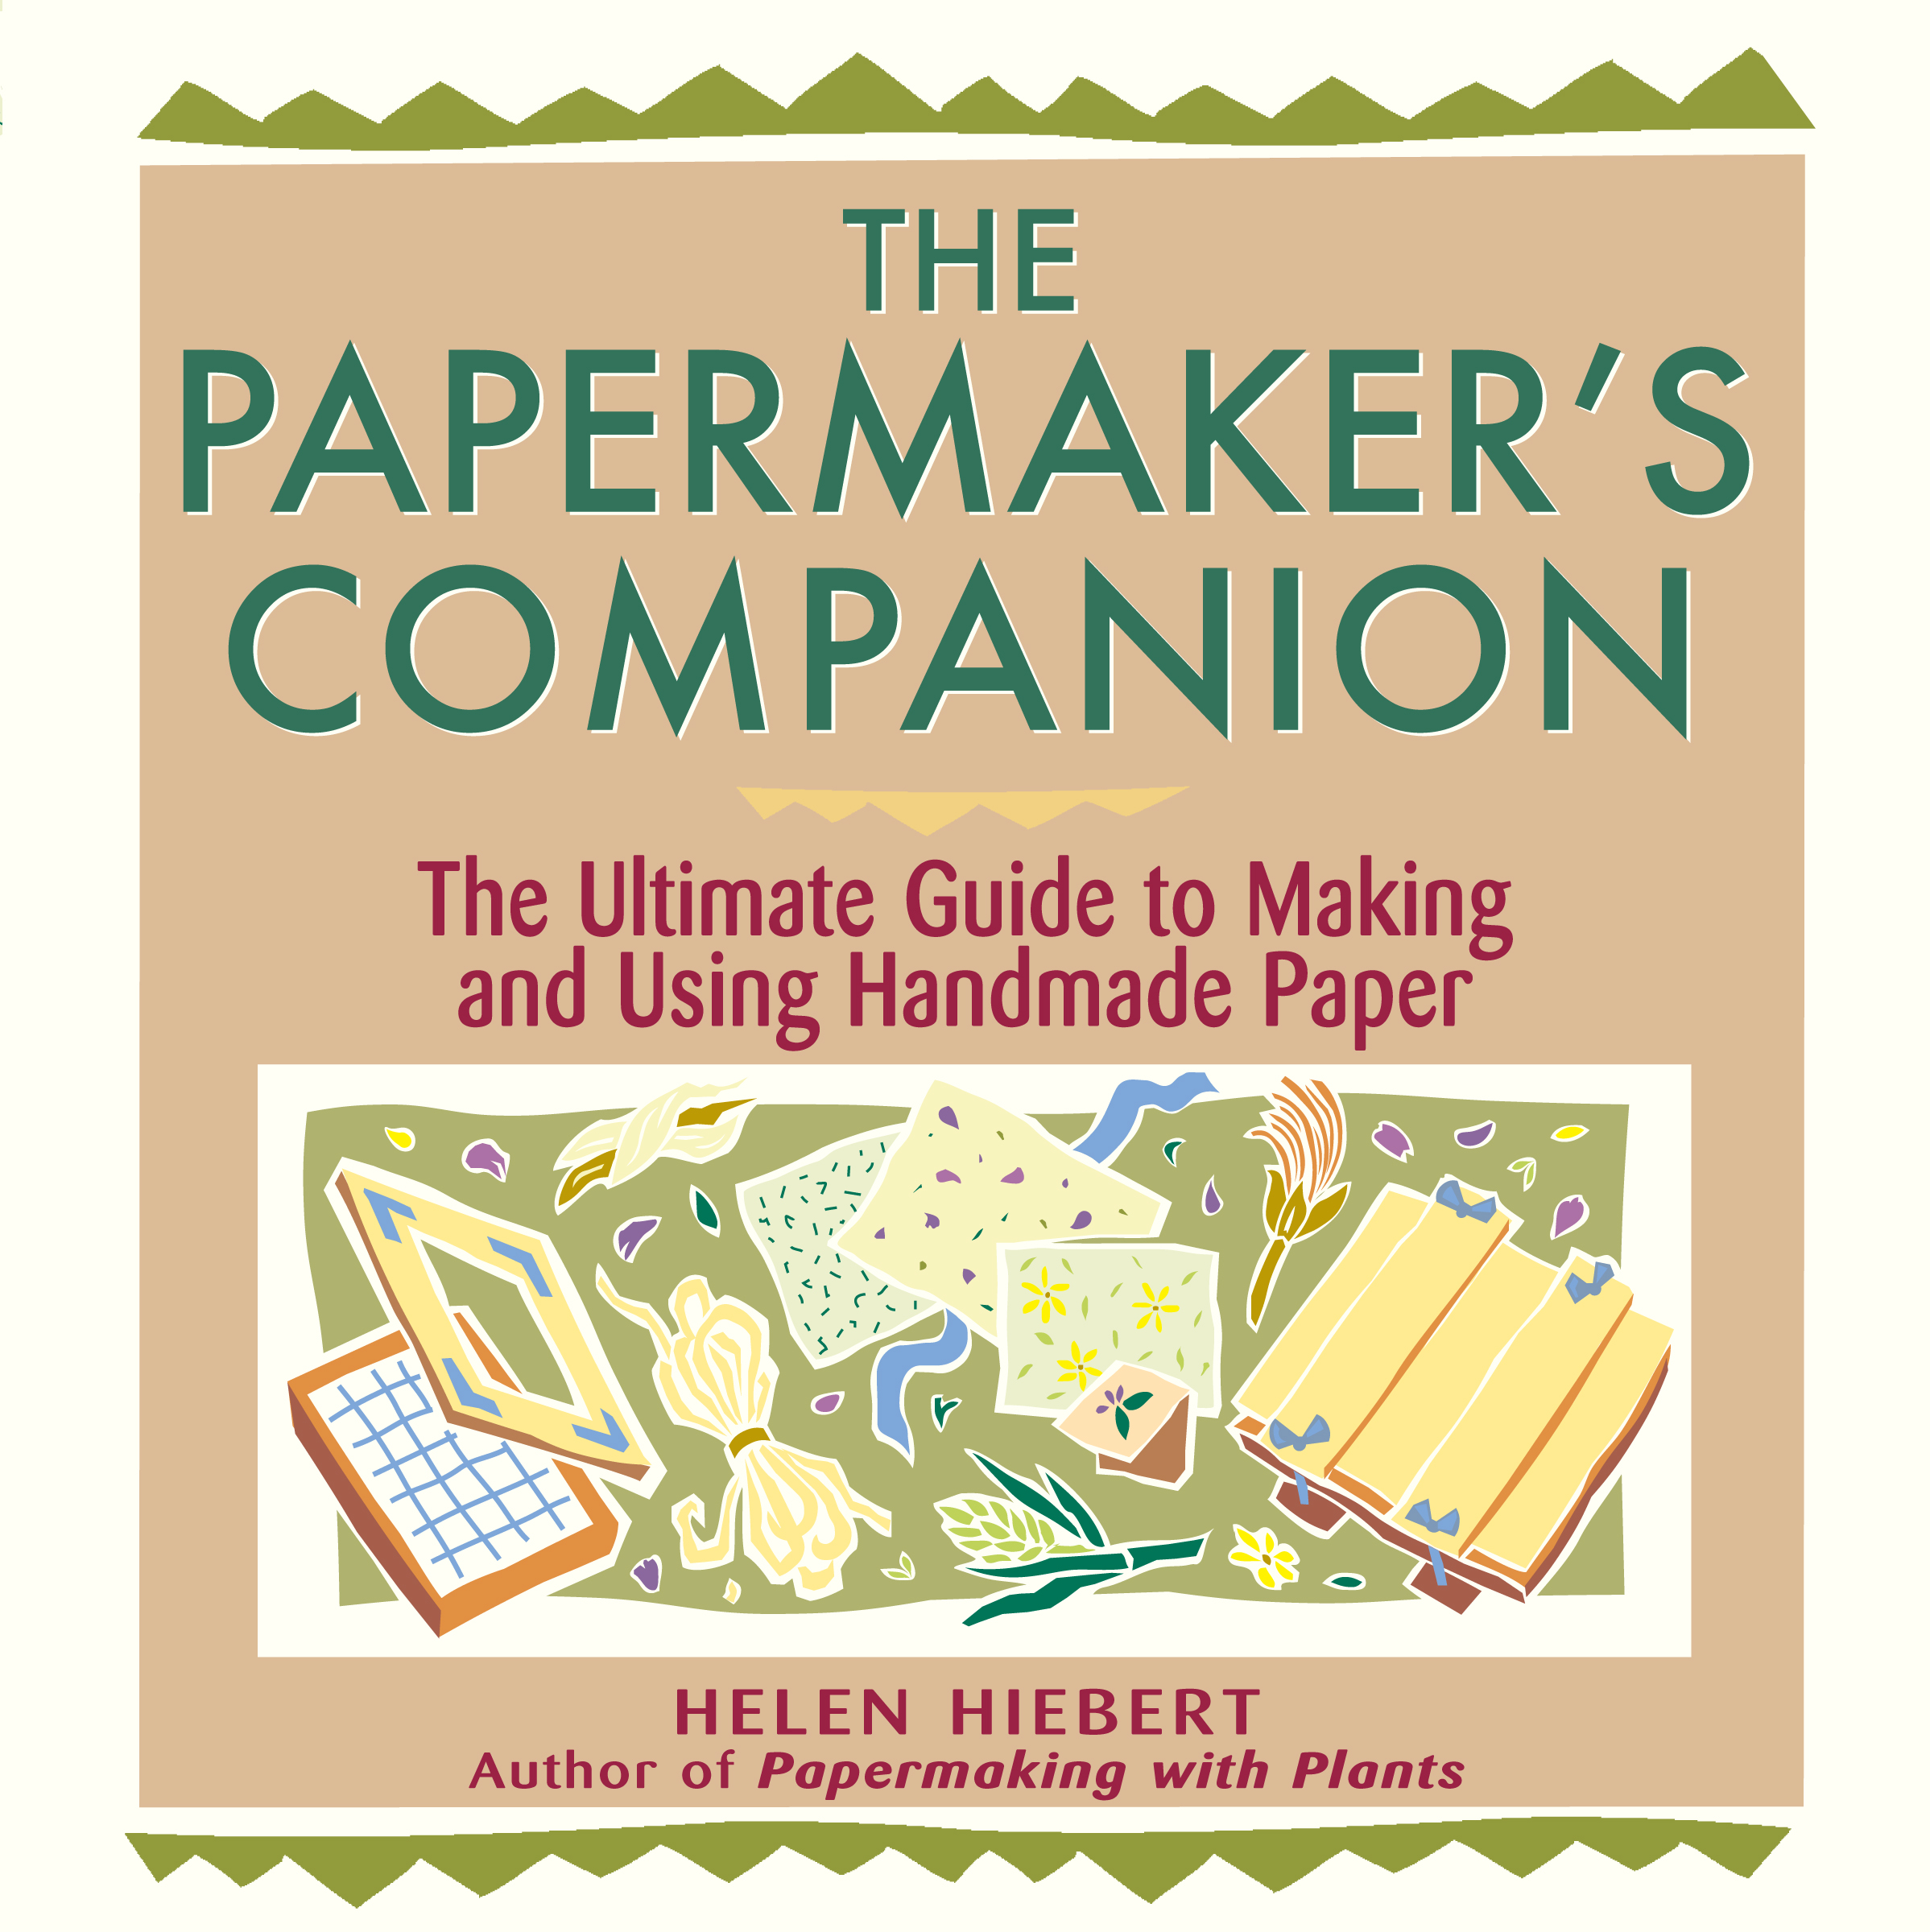 The Papermaker's Companion The Ultimate Guide to Making and Using Handmade Paper - Helen Hiebert